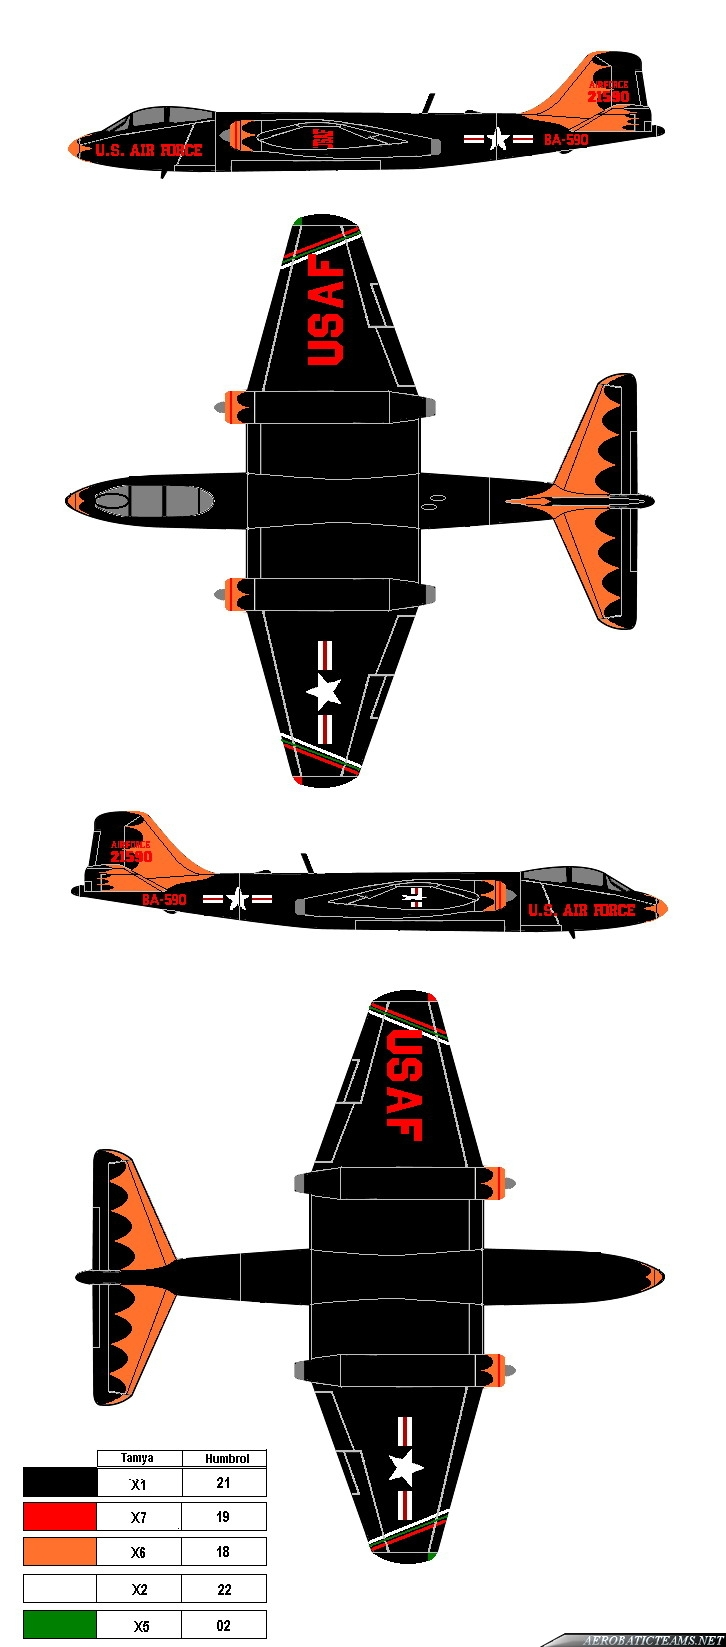 Black Knights B-57 Canberra paint scheme